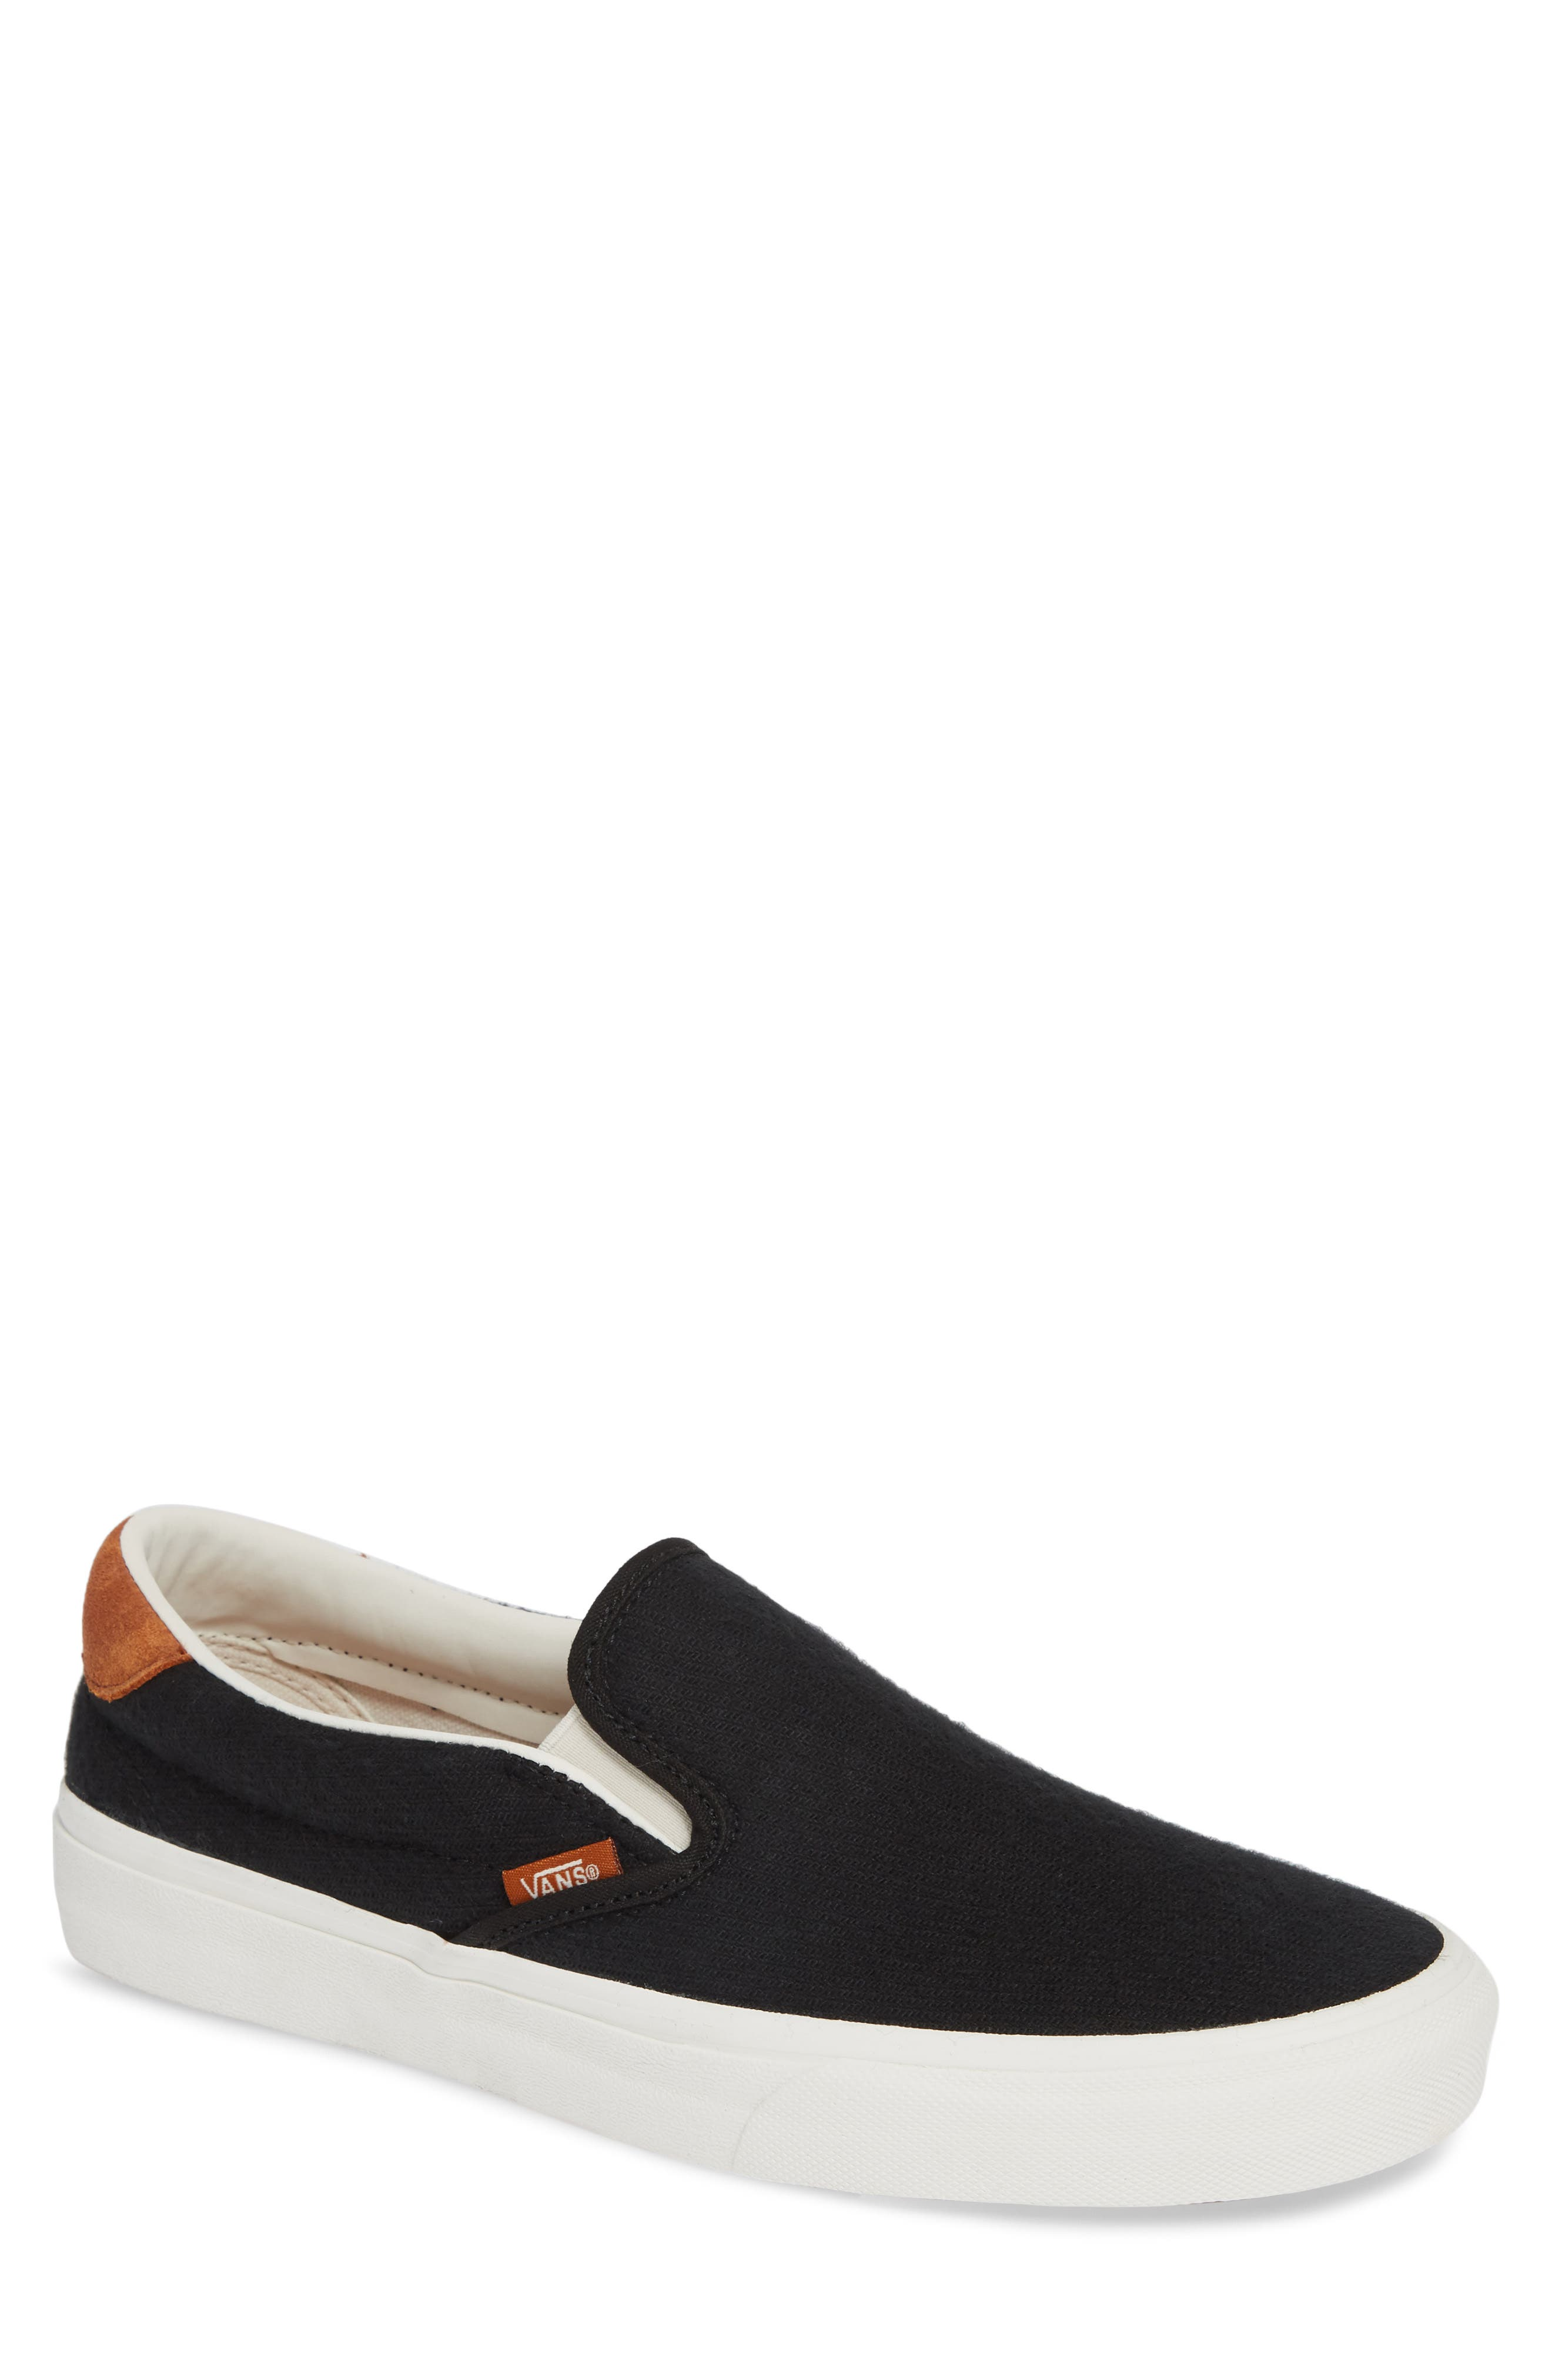 59 Classic Slip-On Sneaker, Main, color, 002